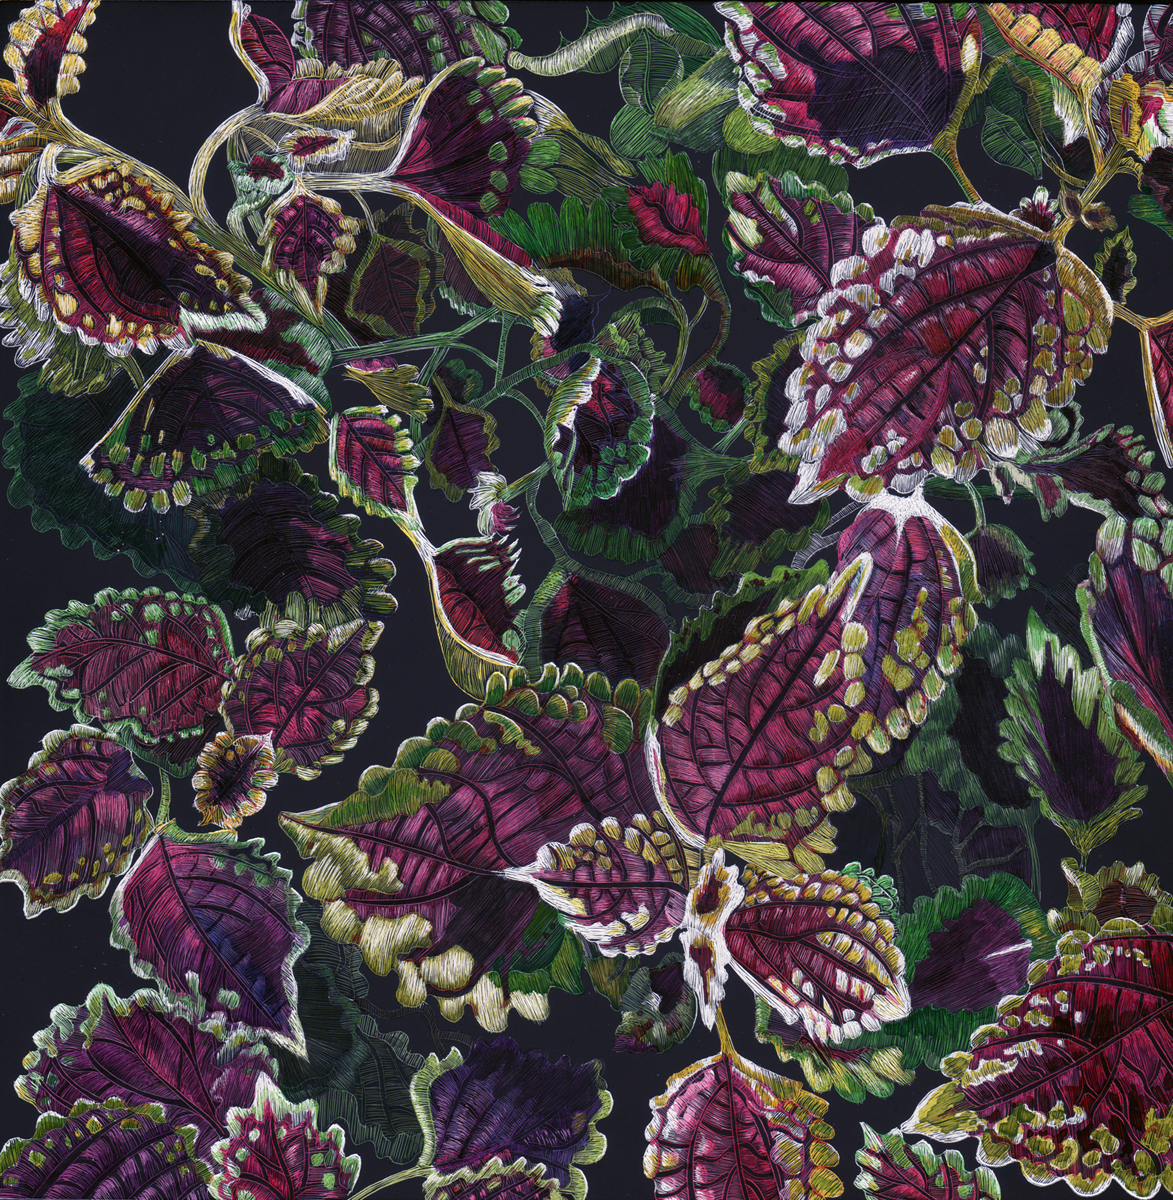 Composition of a Coleus by Lisa Goesling